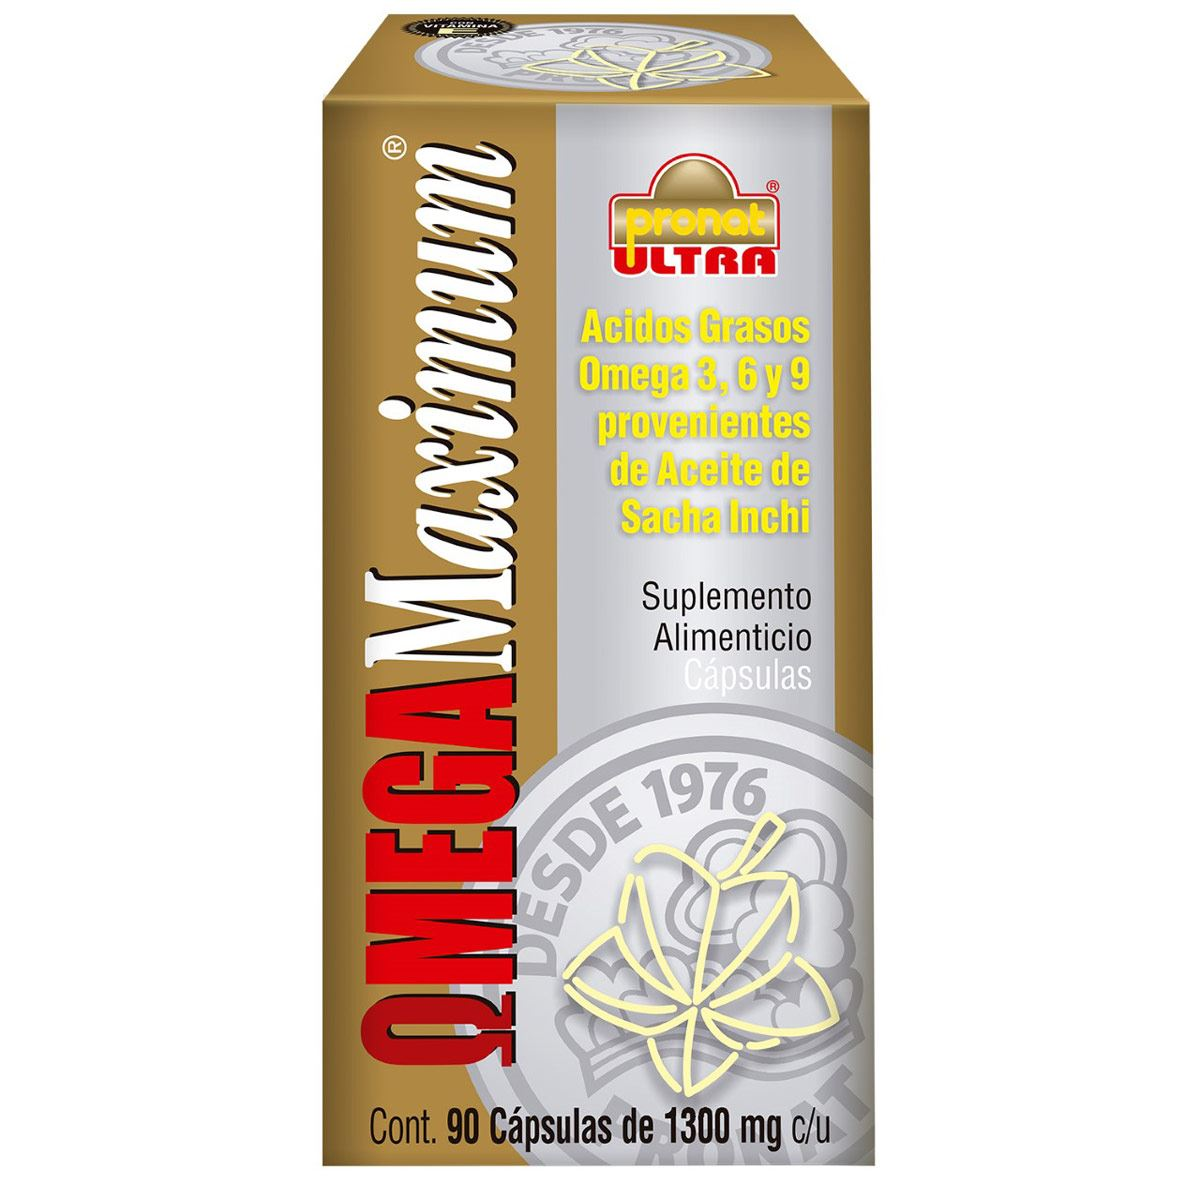 Mega maximum 90 cápsulas (omega 3,6,9)  - Sanborns